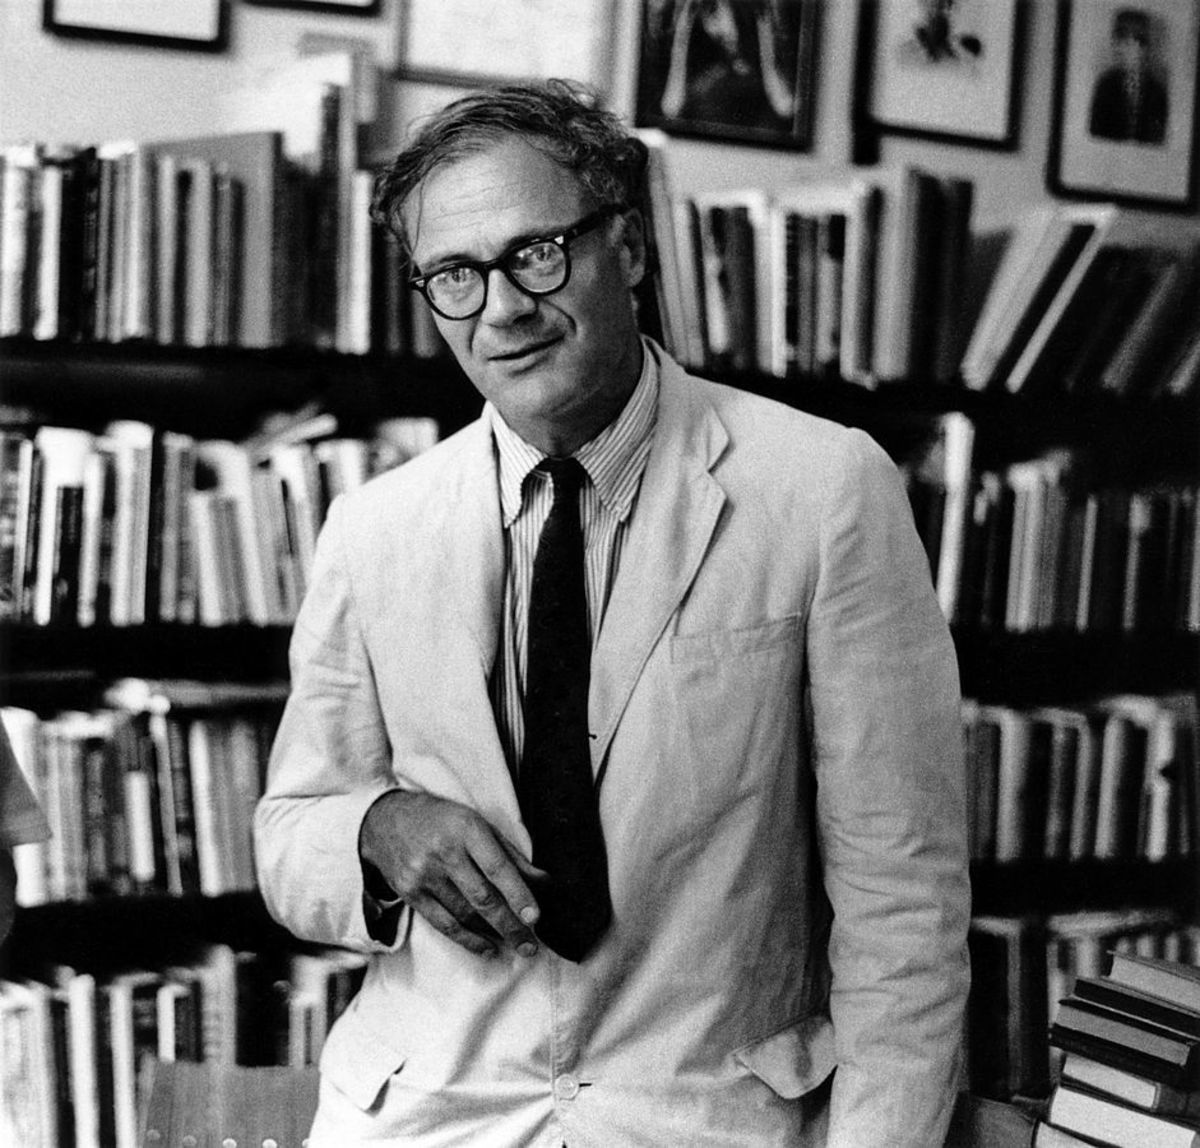 robert lowell skunk hour essay Skunk hour by robert lowell is a very simple poem yet the poet has incorporated layers of meanings in his mundane observations about life and his society, and the.